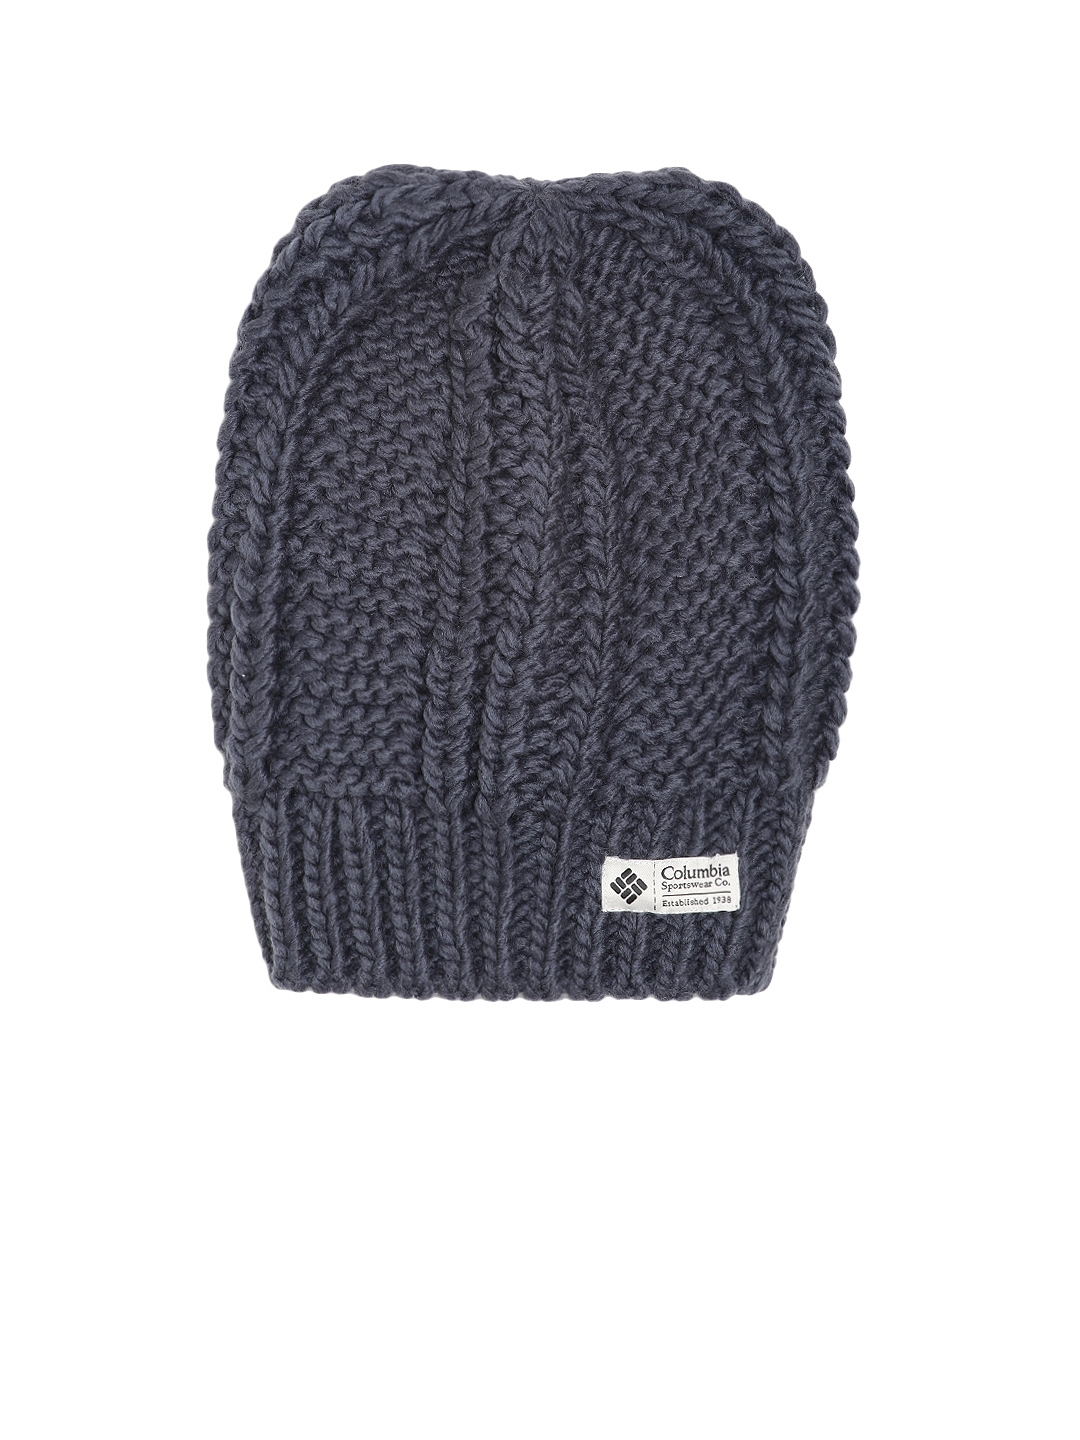 ae82a9f50 Buy Columbia Unisex Navy Blue Hideaway Haven Slouchy Beanie - Caps ...